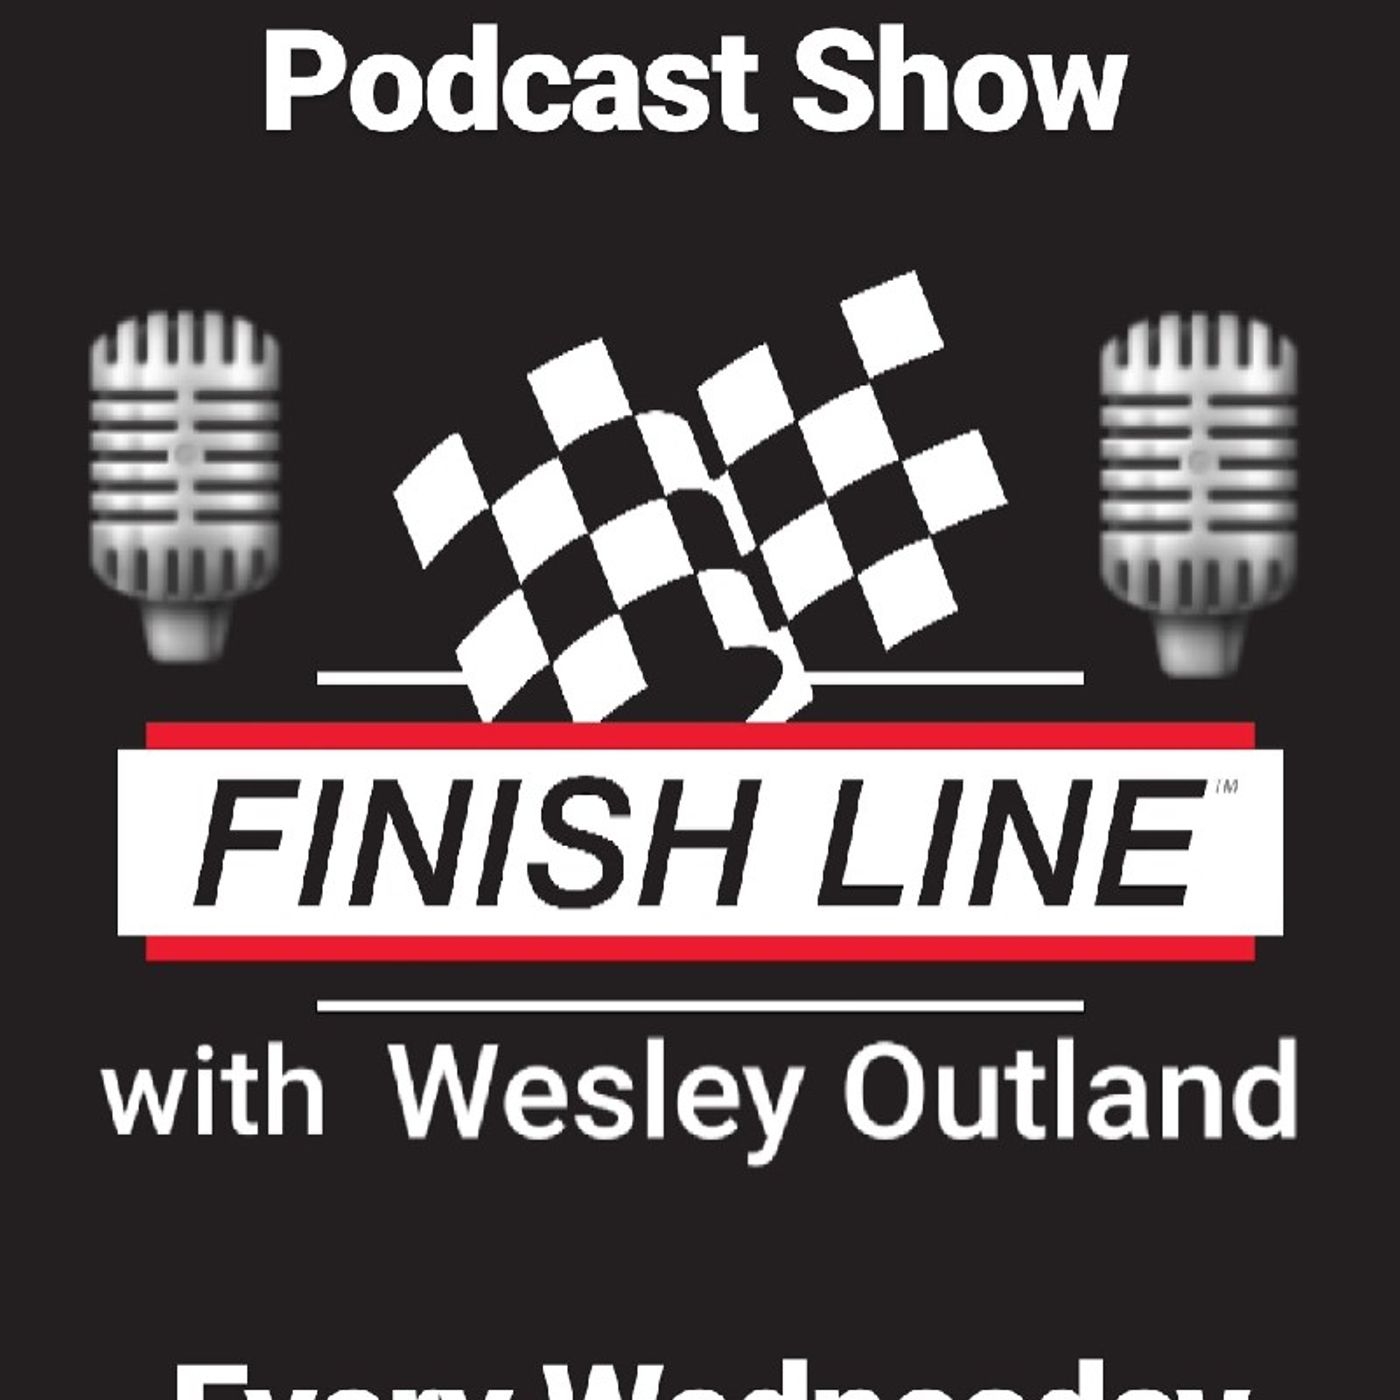 July 3rd🇺🇲 #FinishLine Motorsports Show LIVE from Toccoa, GA Raceway w/ guests Jerry Smith, Don McCormick & Mike Neff! 🏁🎙🏁